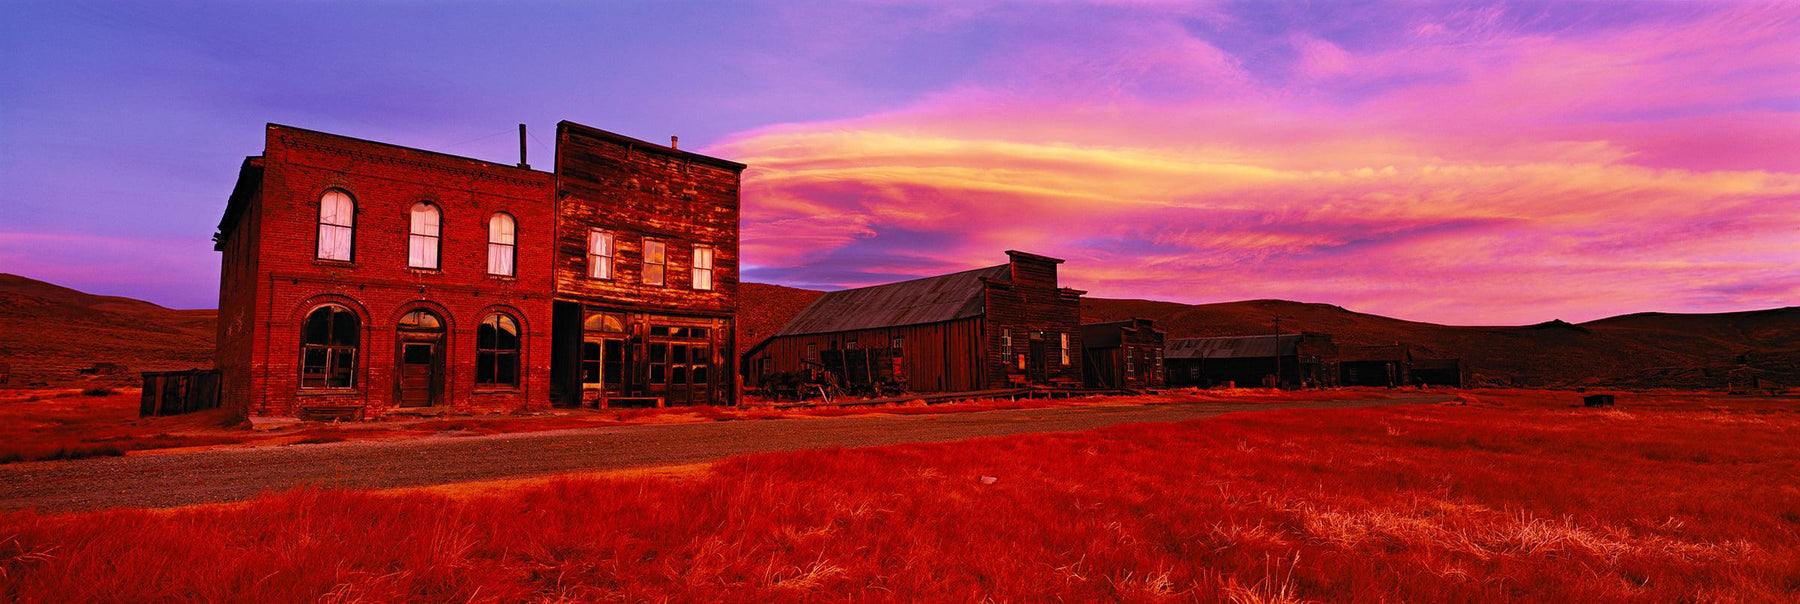 Old buildings in the abandoned ghost town of Bodie California at sunrise